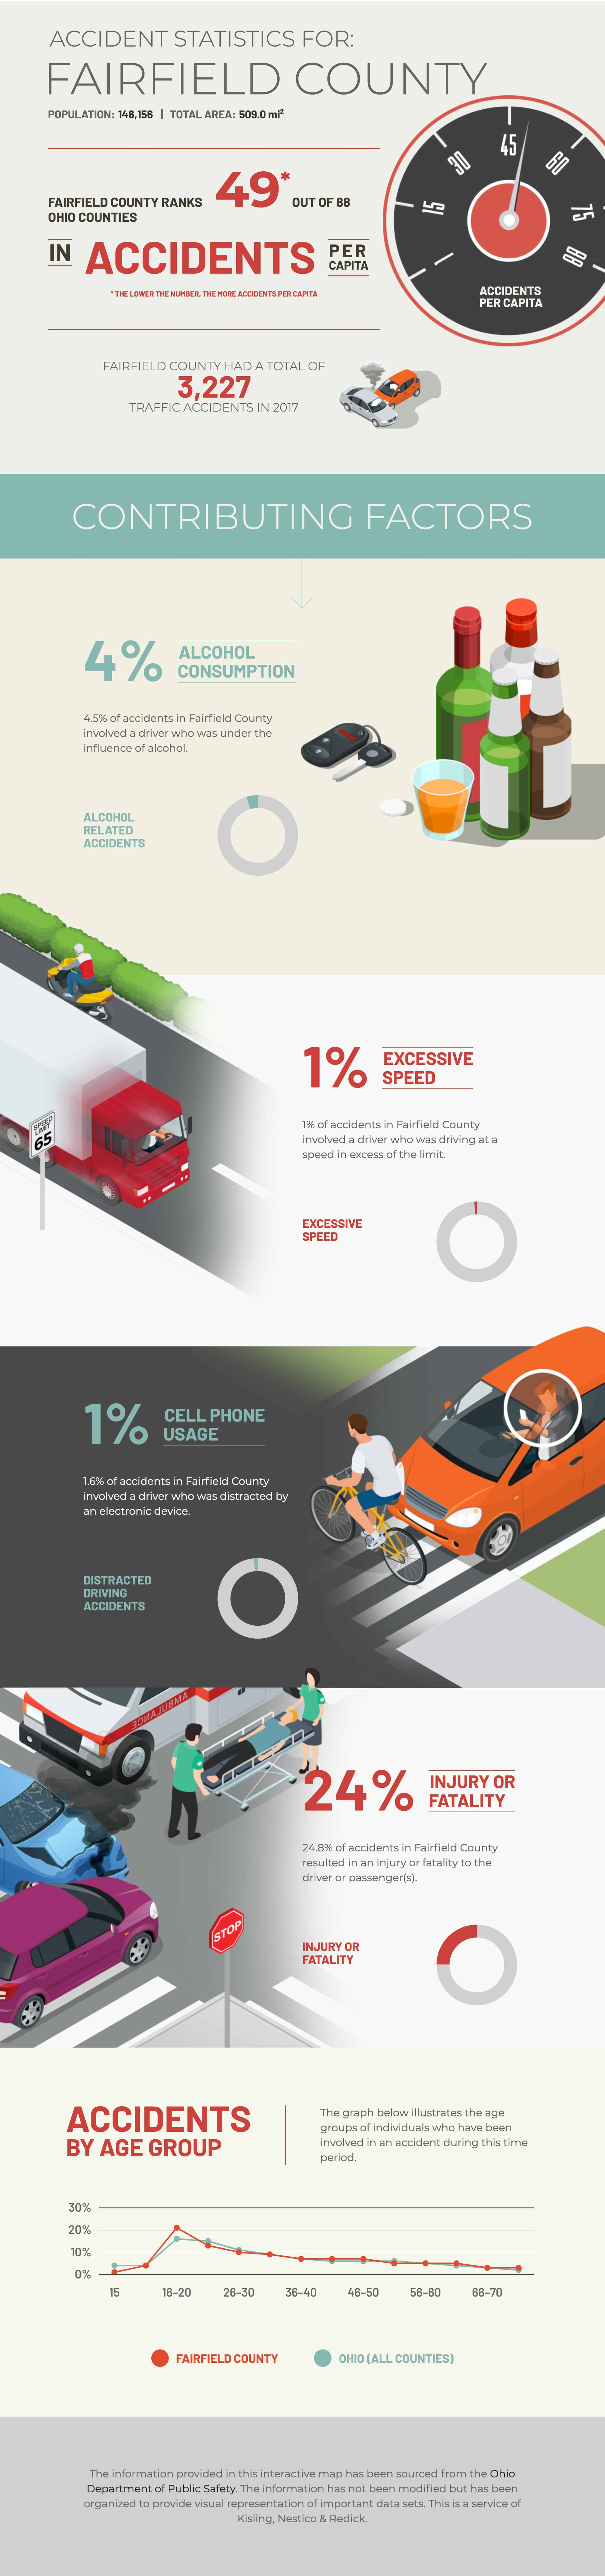 Fairfield County Accident Statistics Infographic